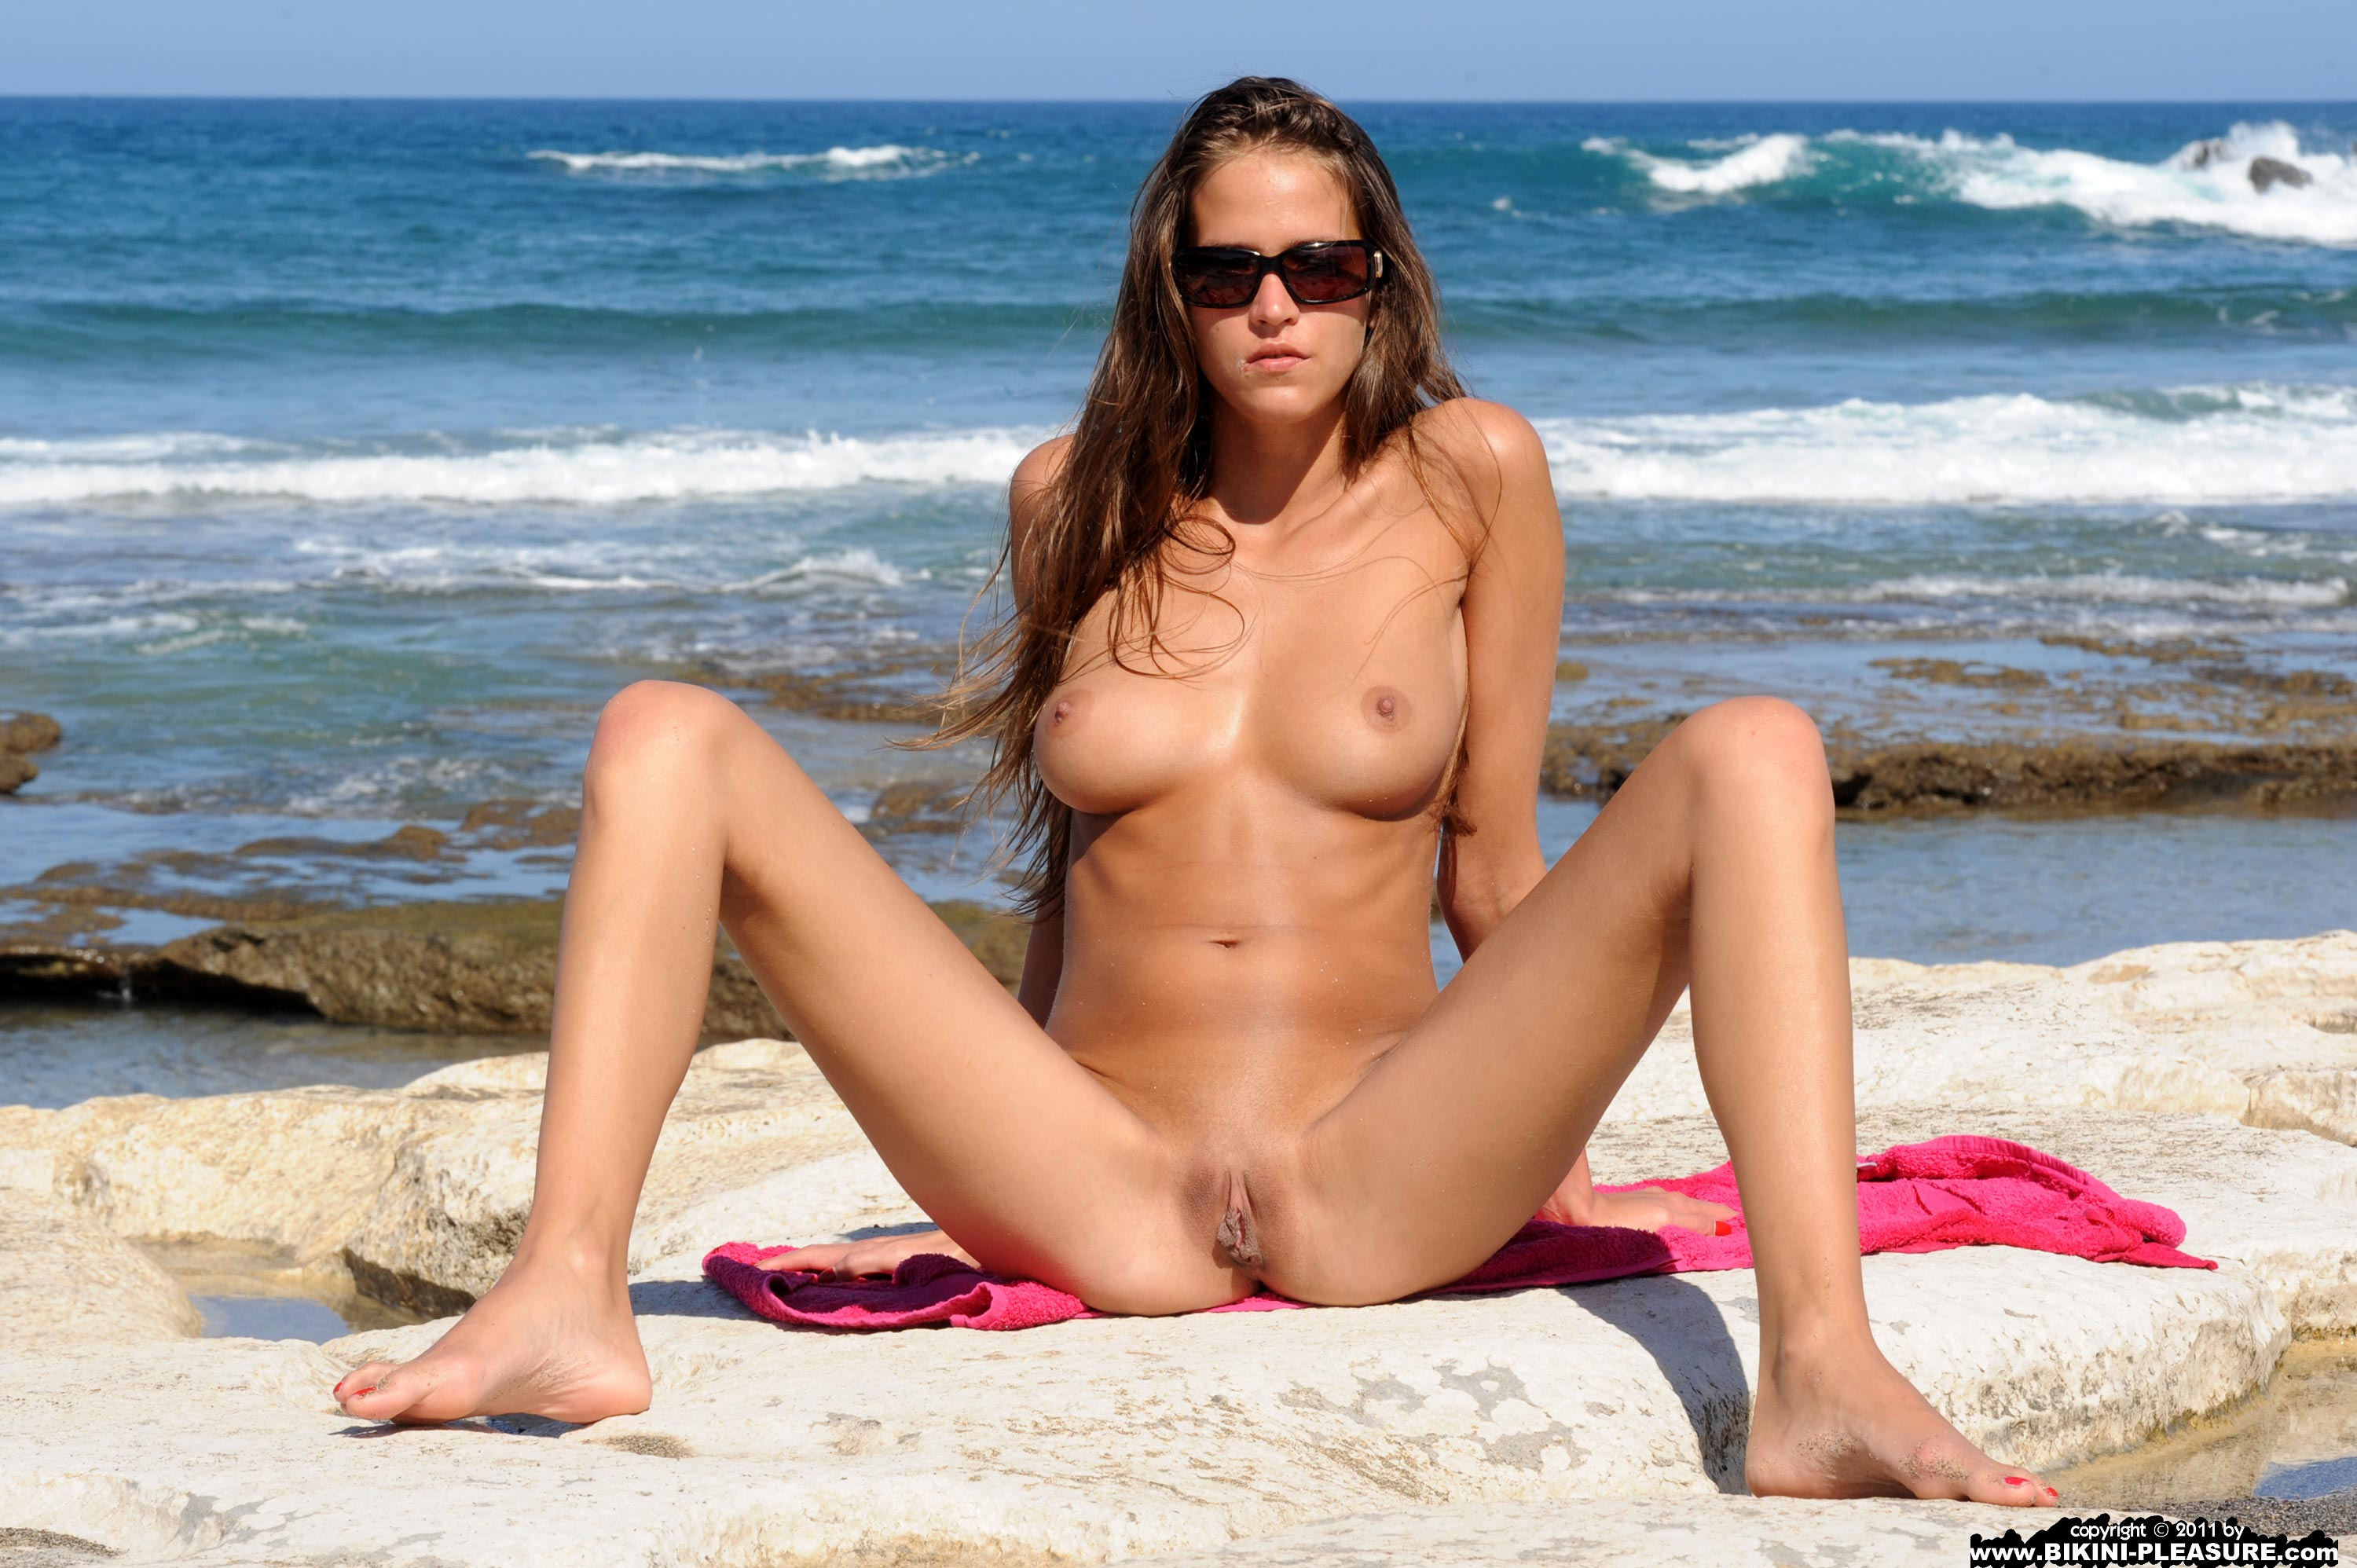 women beaches nude Hot on